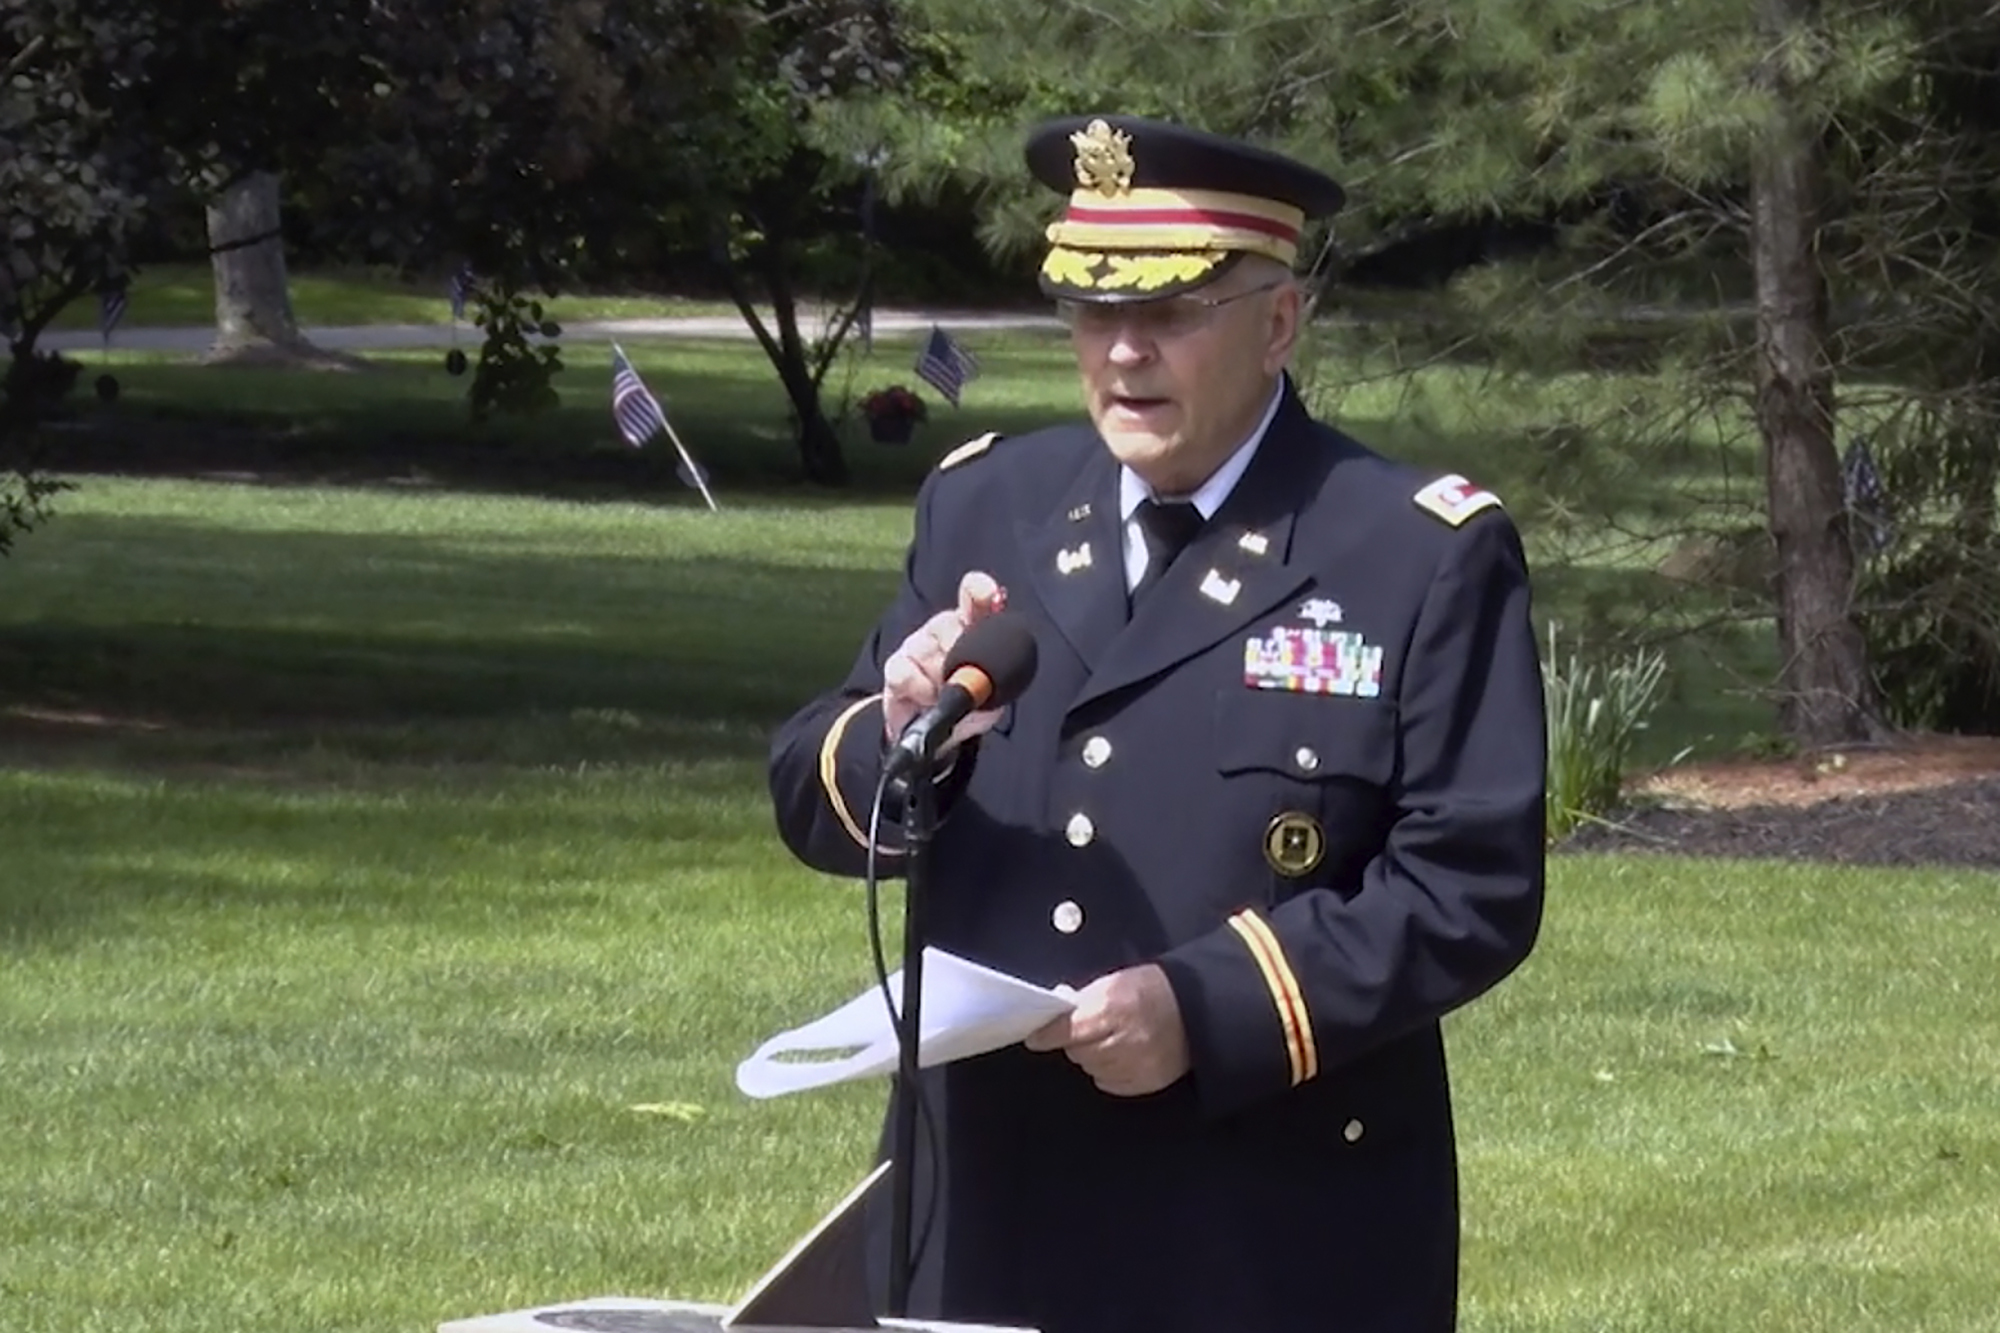 In this frame grab from video provided by Hudson Community Television, retired Army Lt. Col. Barnard Kemter taps the microphone after organizers turned off the audio during his speech at a Memorial Day ceremony, Monday, May 31, 2021, in Hudson, Ohio. Organizers of the ceremony turned off Kemter's microphone when he began talking about how freed Black slaves had honored fallen soldiers soon after the Civil War. (Hudson Community Television via AP)